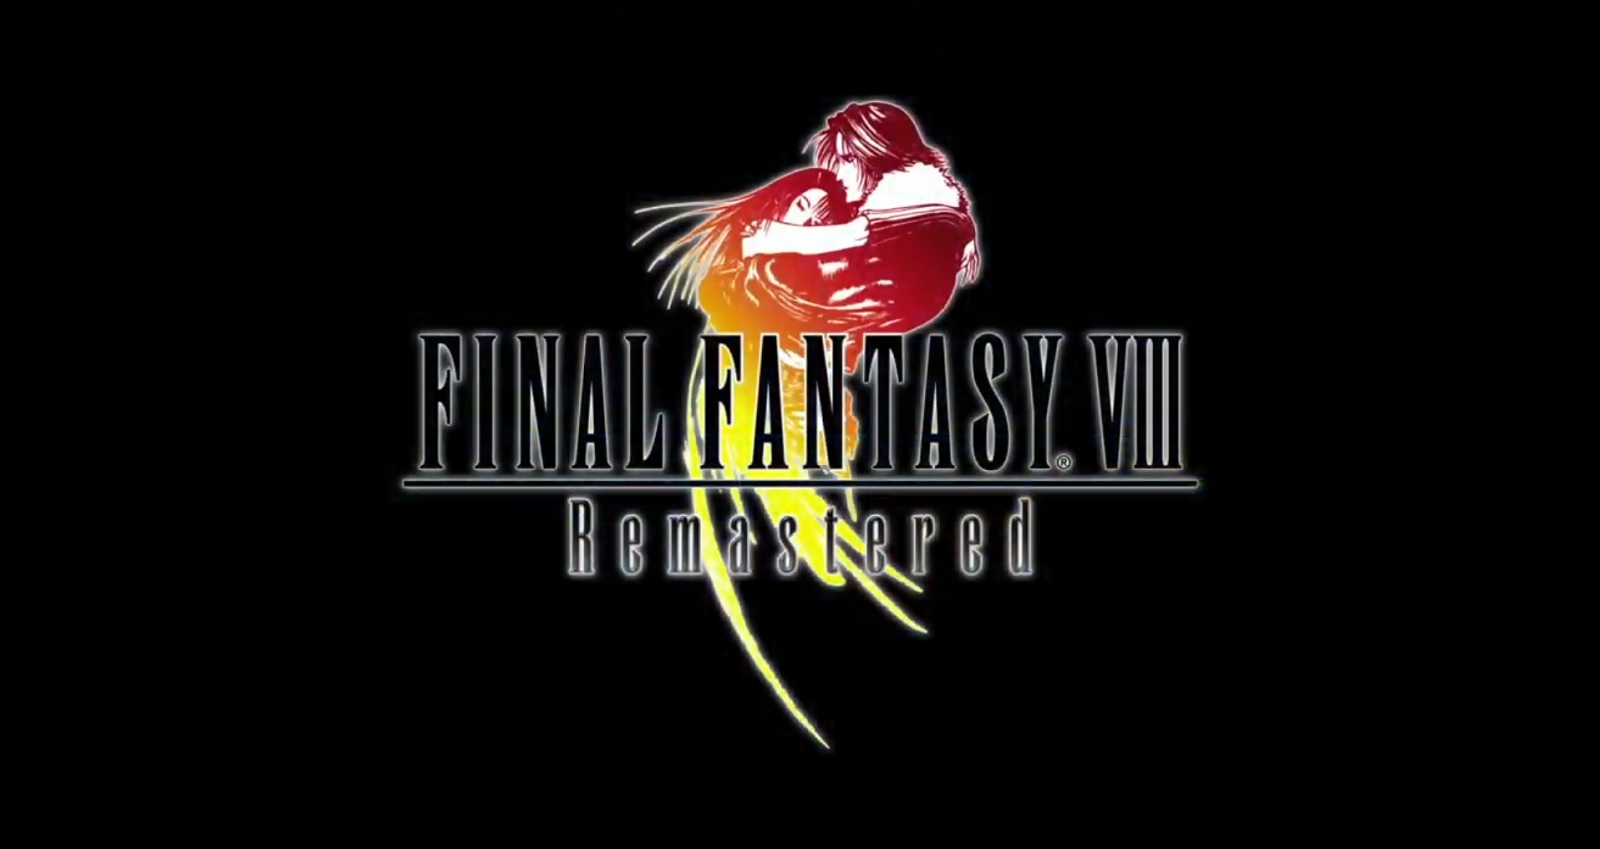 Final Fantasy 8 Remastered: release date, news and rumors